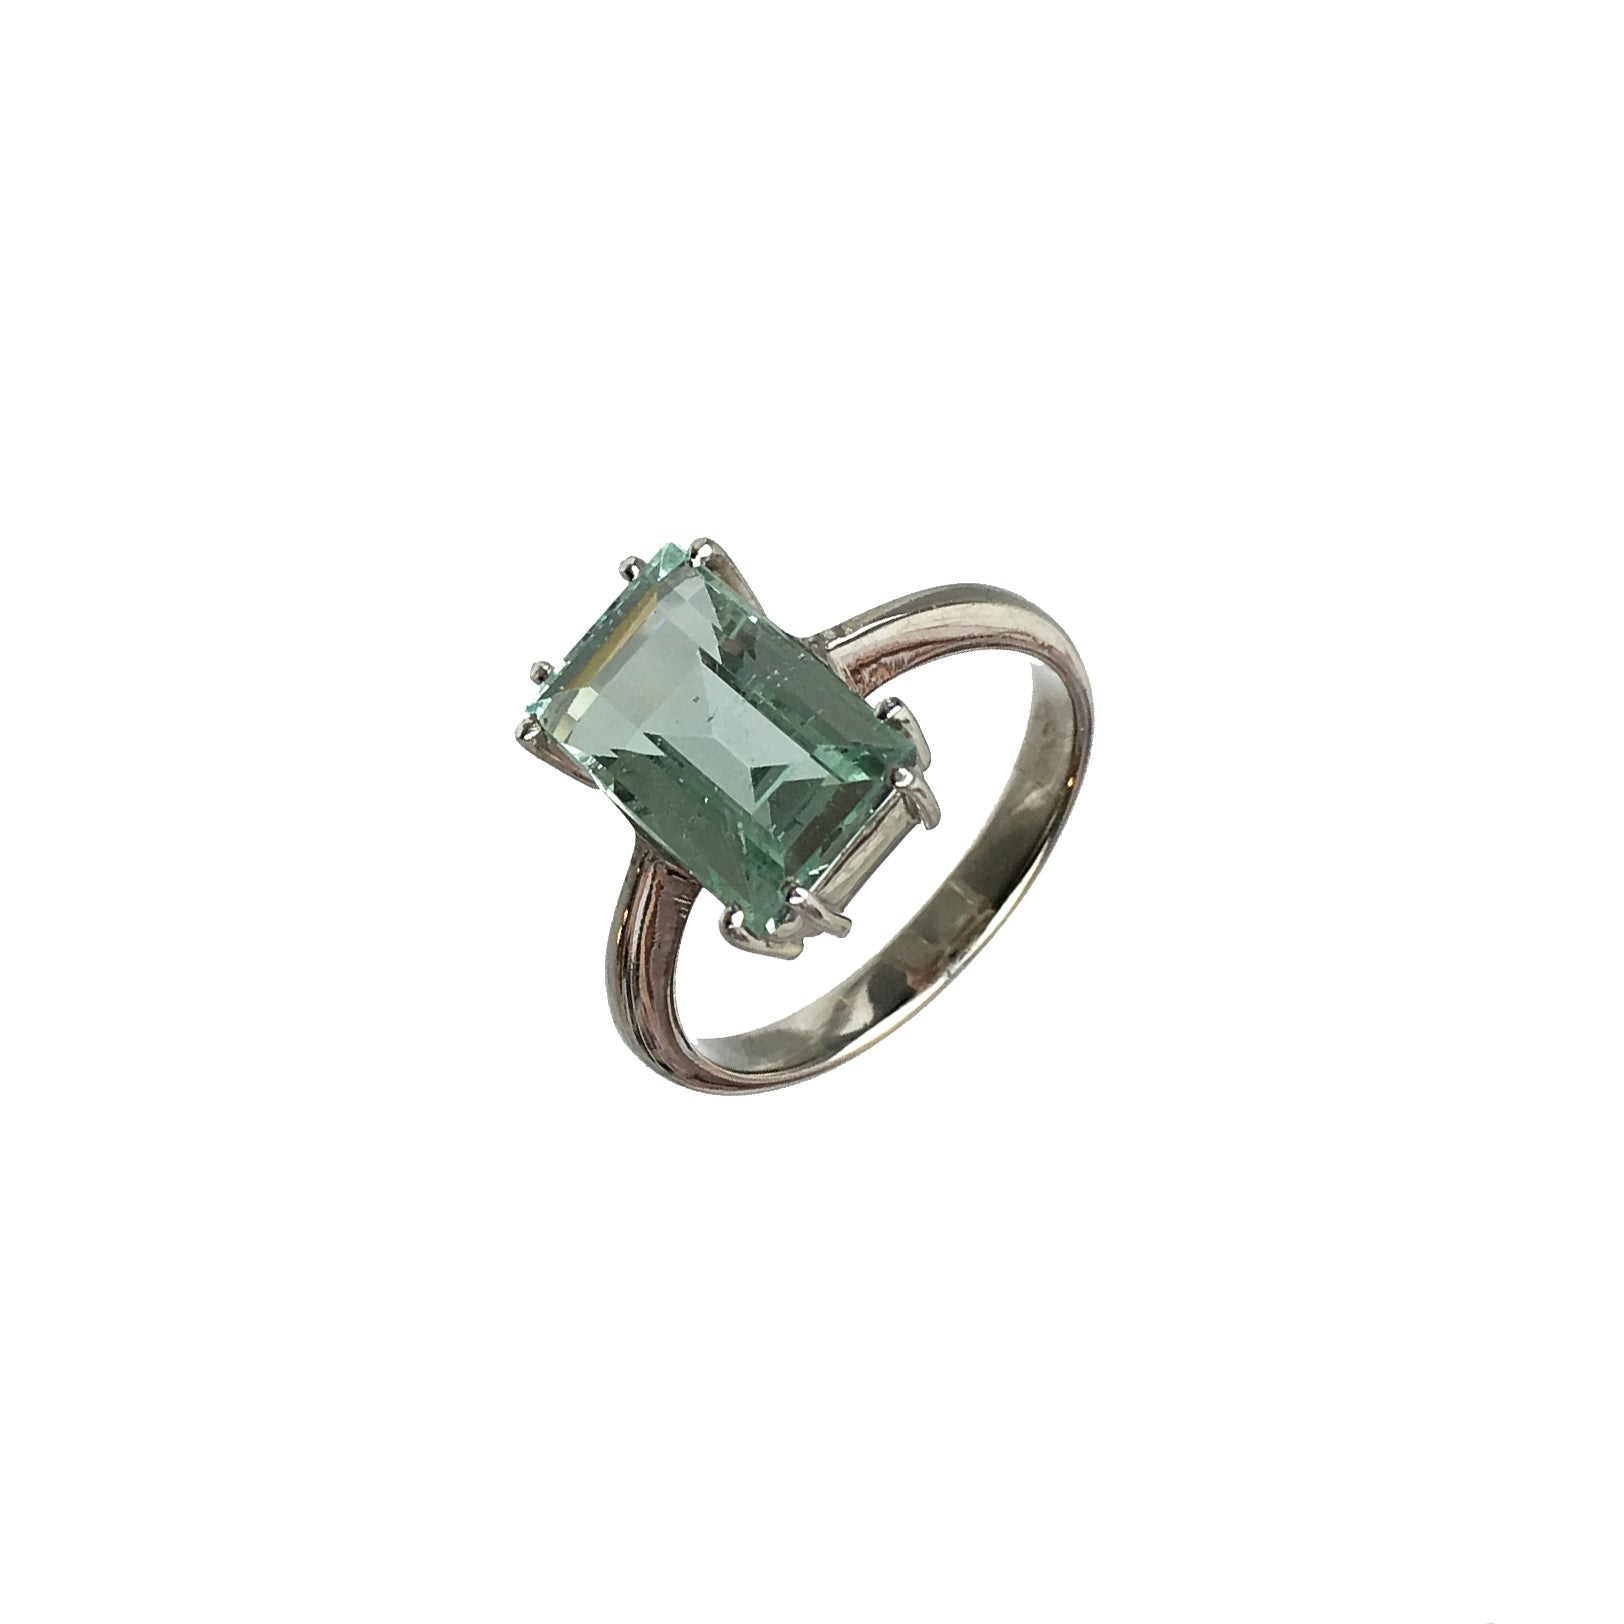 diamond featuring graff and collections ring cut jewels jewellery emerald ct a high